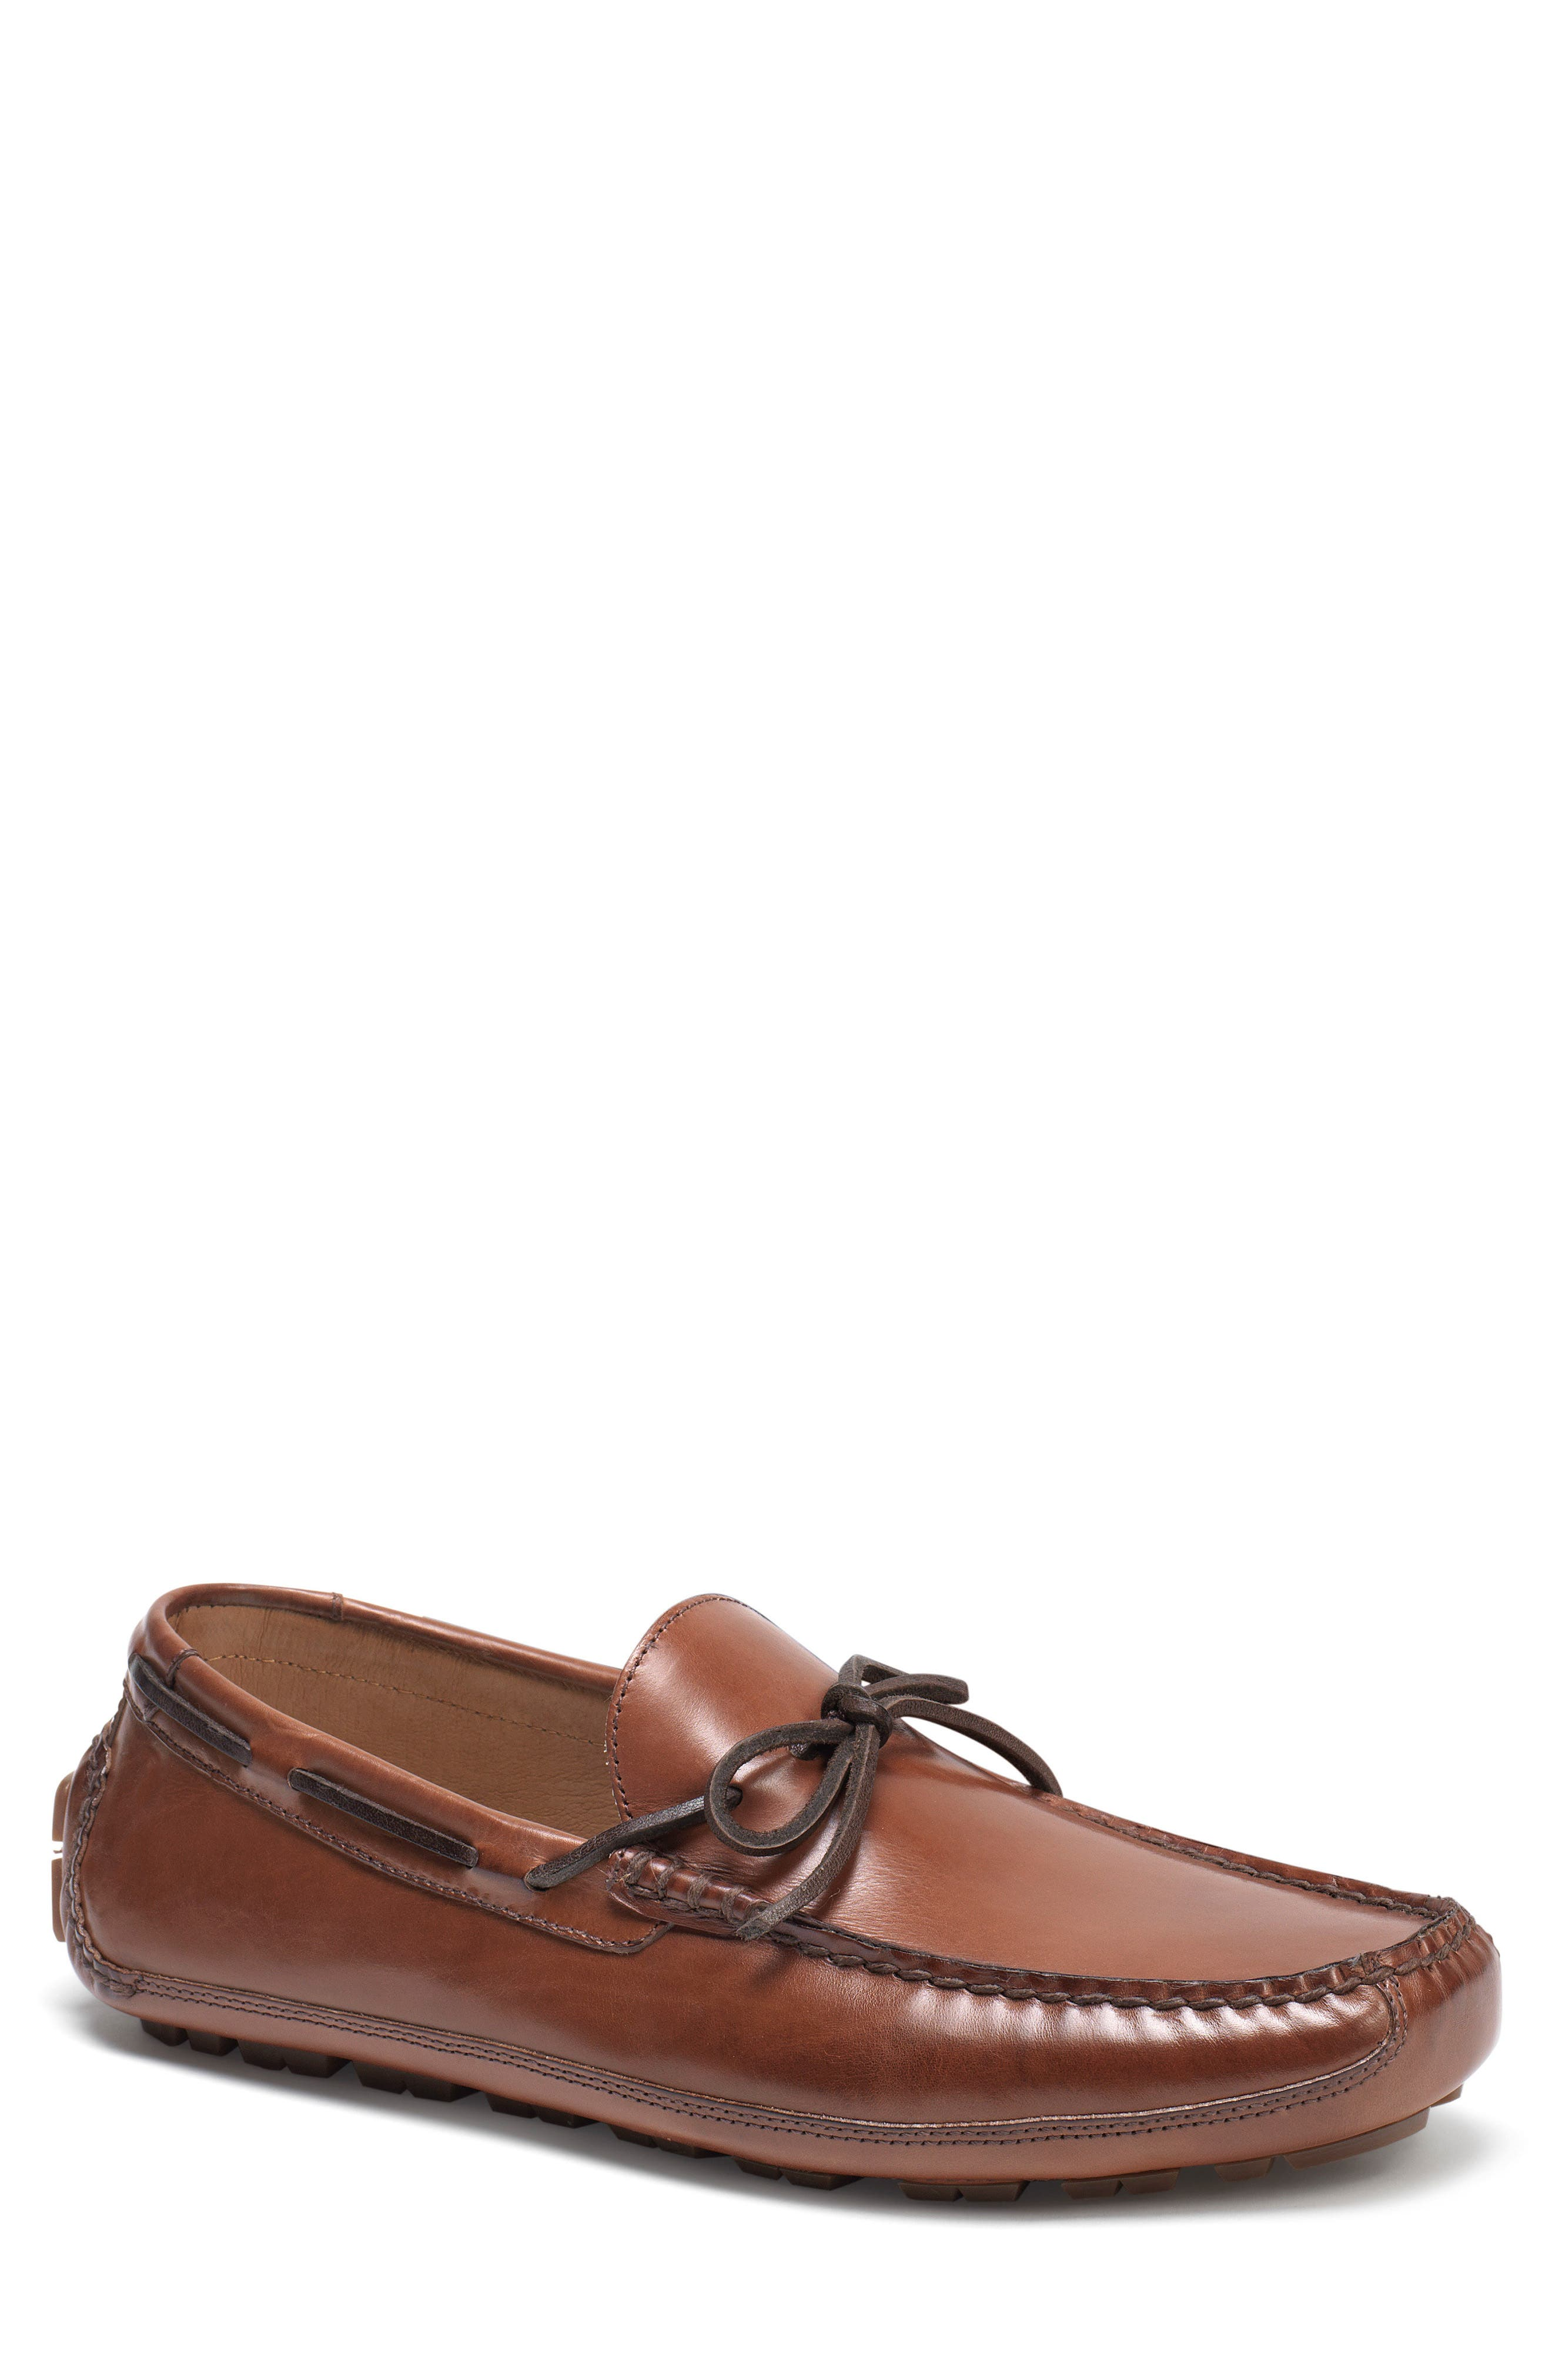 Dillion Driving Loafer,                         Main,                         color, BROWN LEATHER